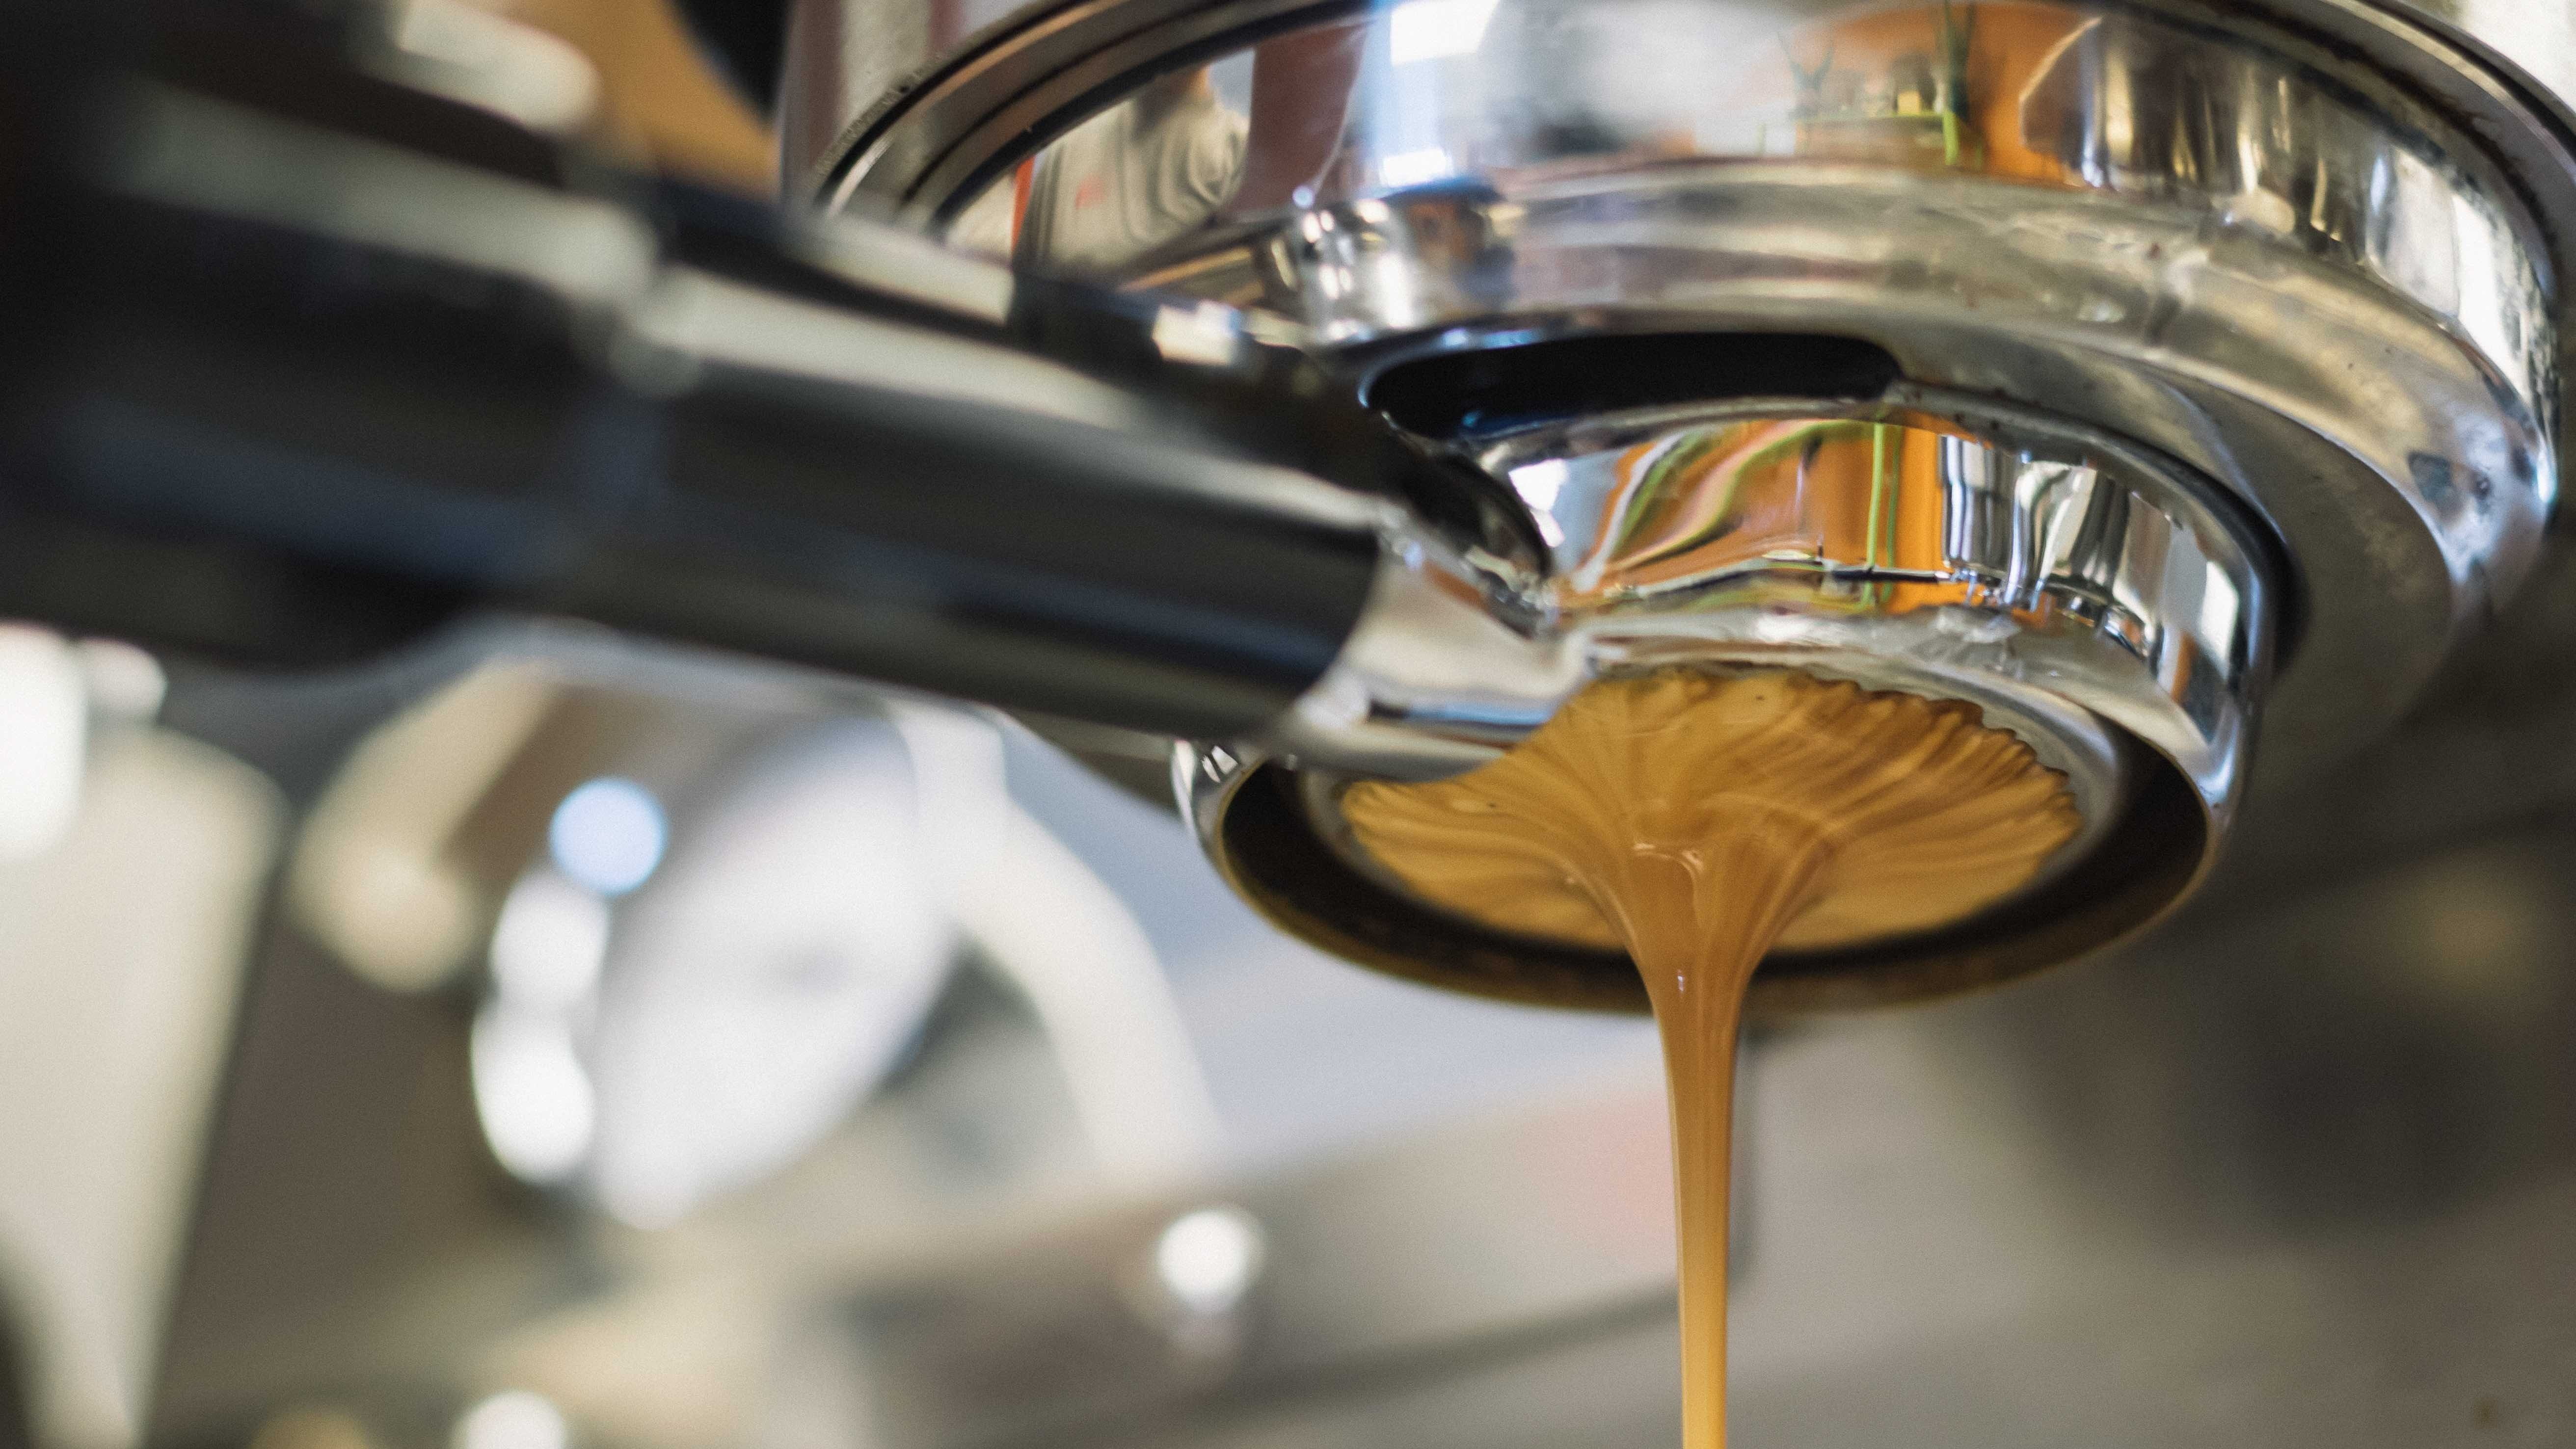 Coffee_and_MFC_barrier_properties-772604-edited.jpg